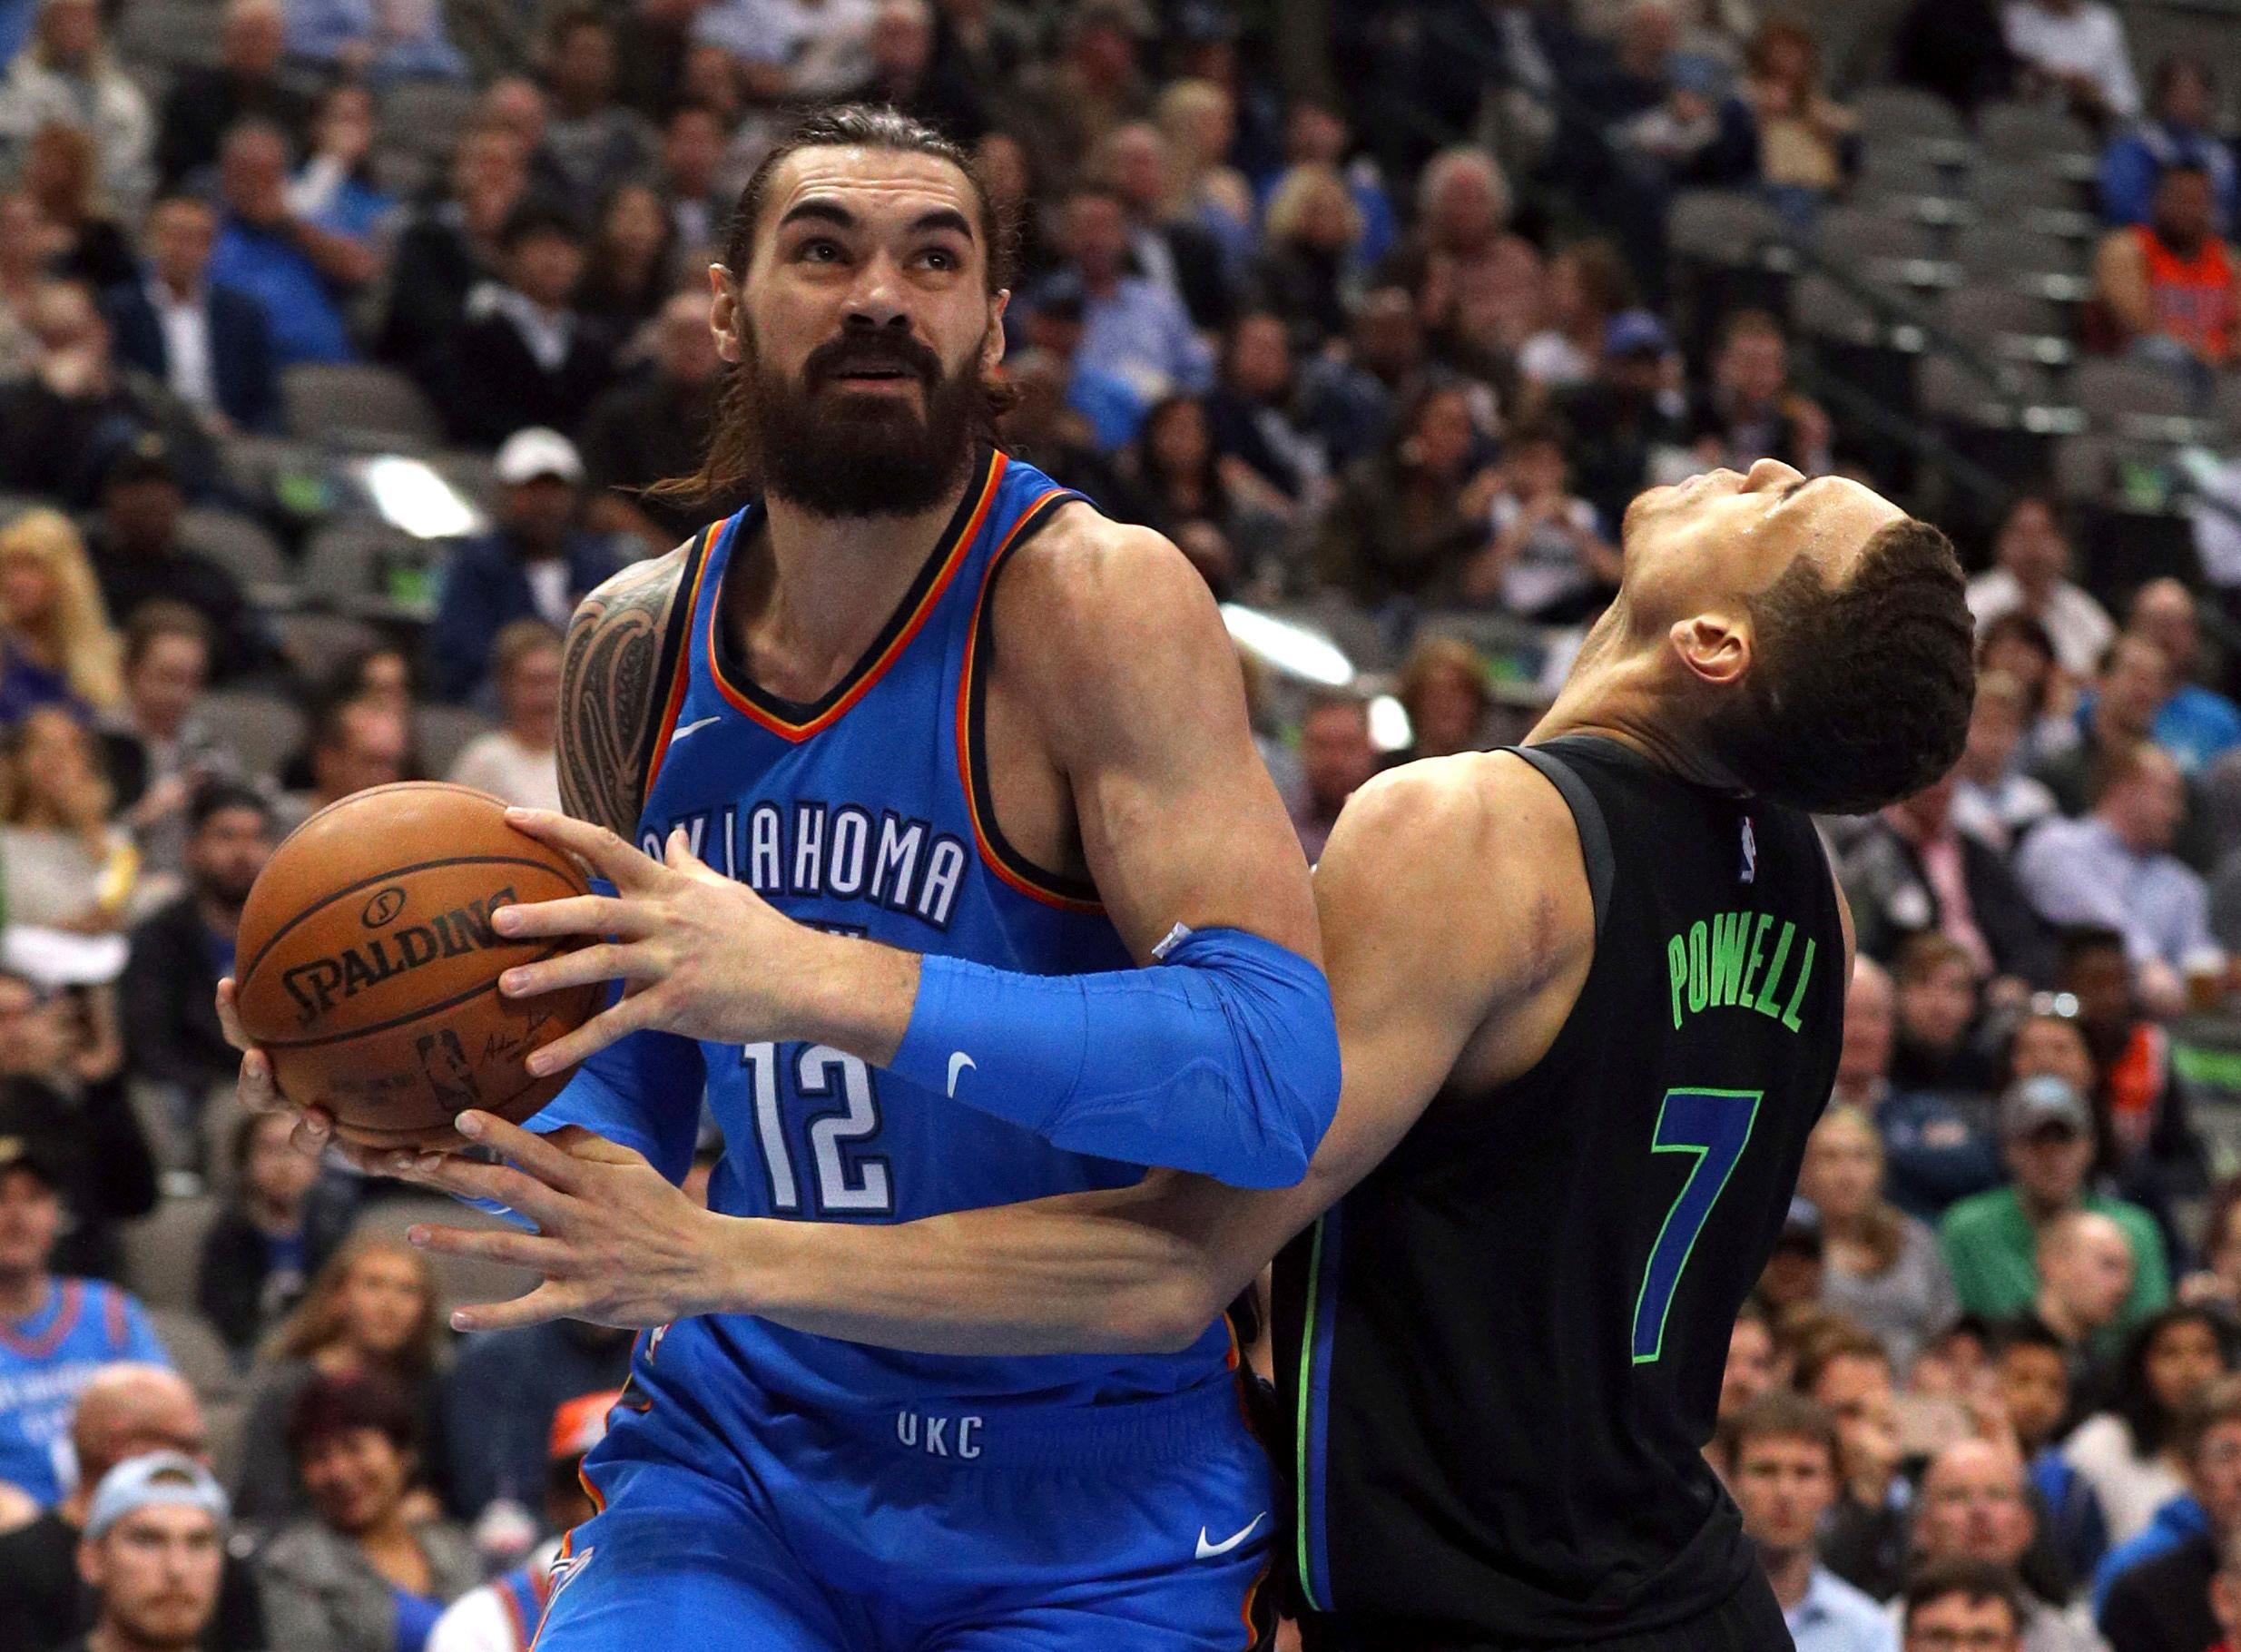 Oklahoma City Thunder center Steven Adams (12) gets fouled by Dallas Mavericks forward Dwight Powell (7) in the first half of an NBA basketball game Wednesday, Feb. 28, 2018 in Dallas. (AP Photo/ Richard W. Rodriguez)